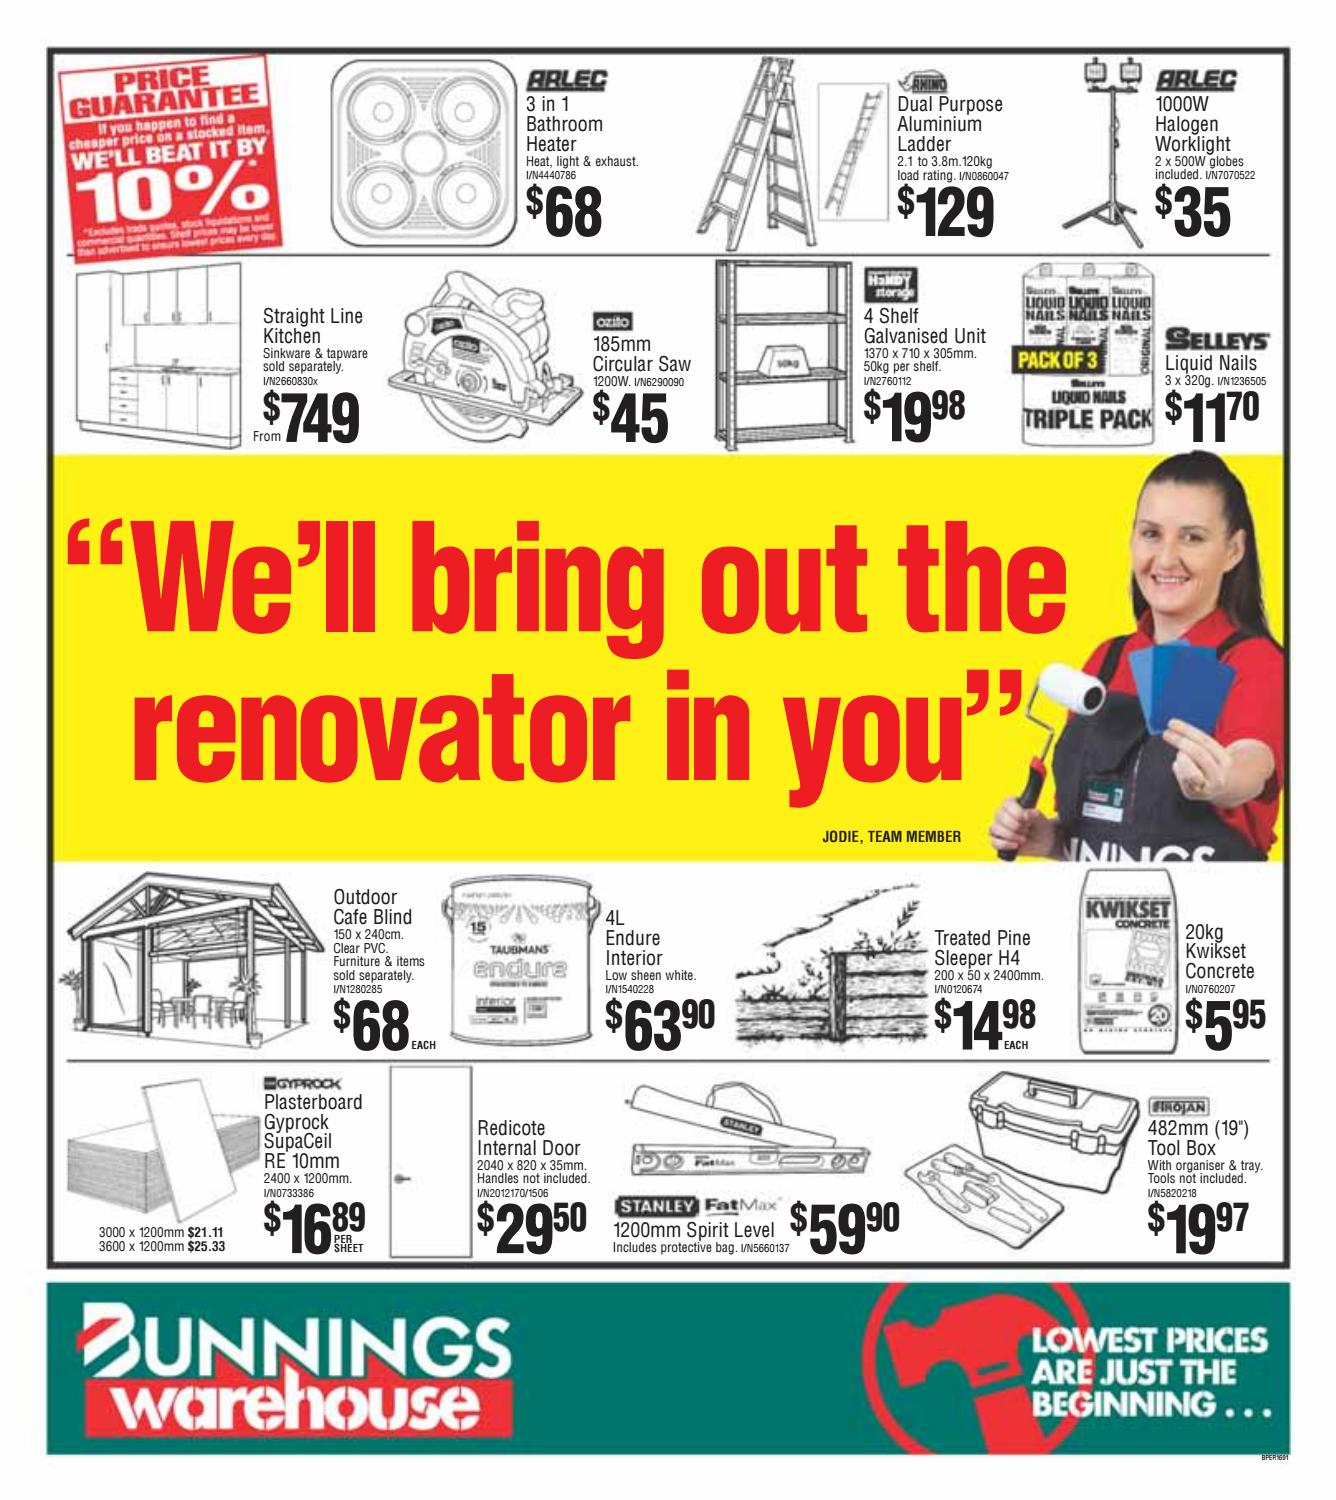 Bunnings Catalogue Test by gaster teh object hingy - issuu